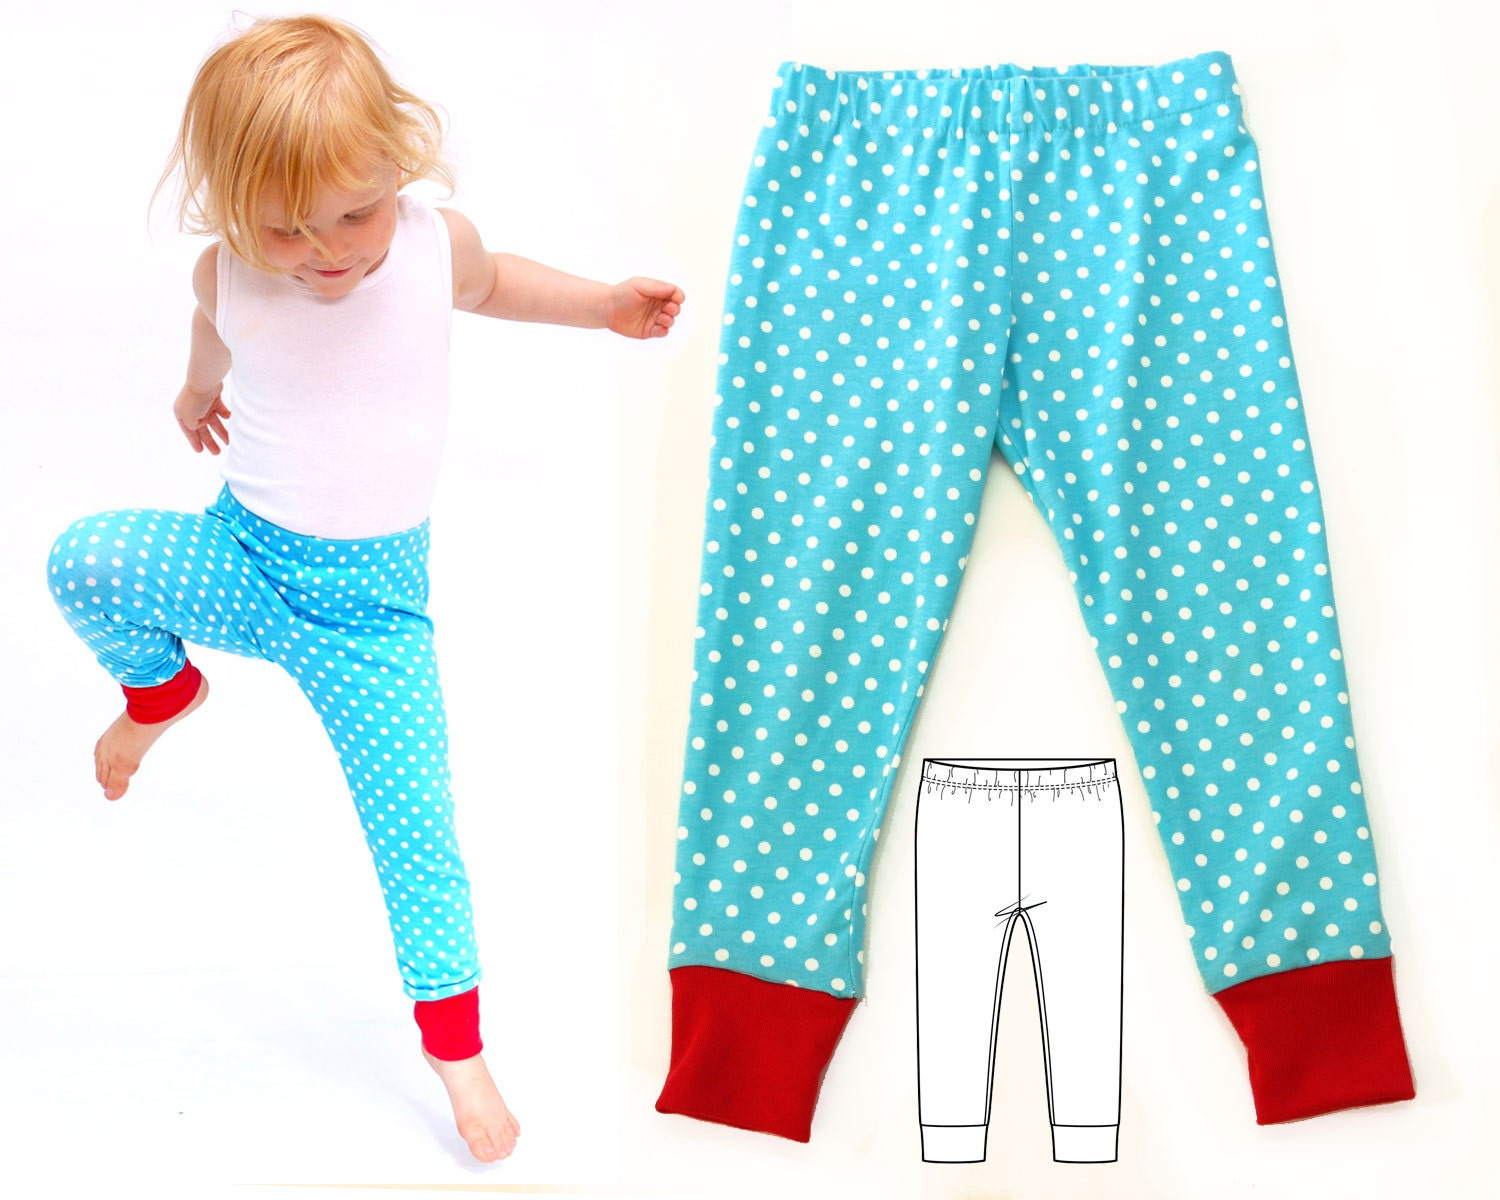 Baby leggings pattern baby sewing pattern baby pants pattern this is a digital file jeuxipadfo Image collections